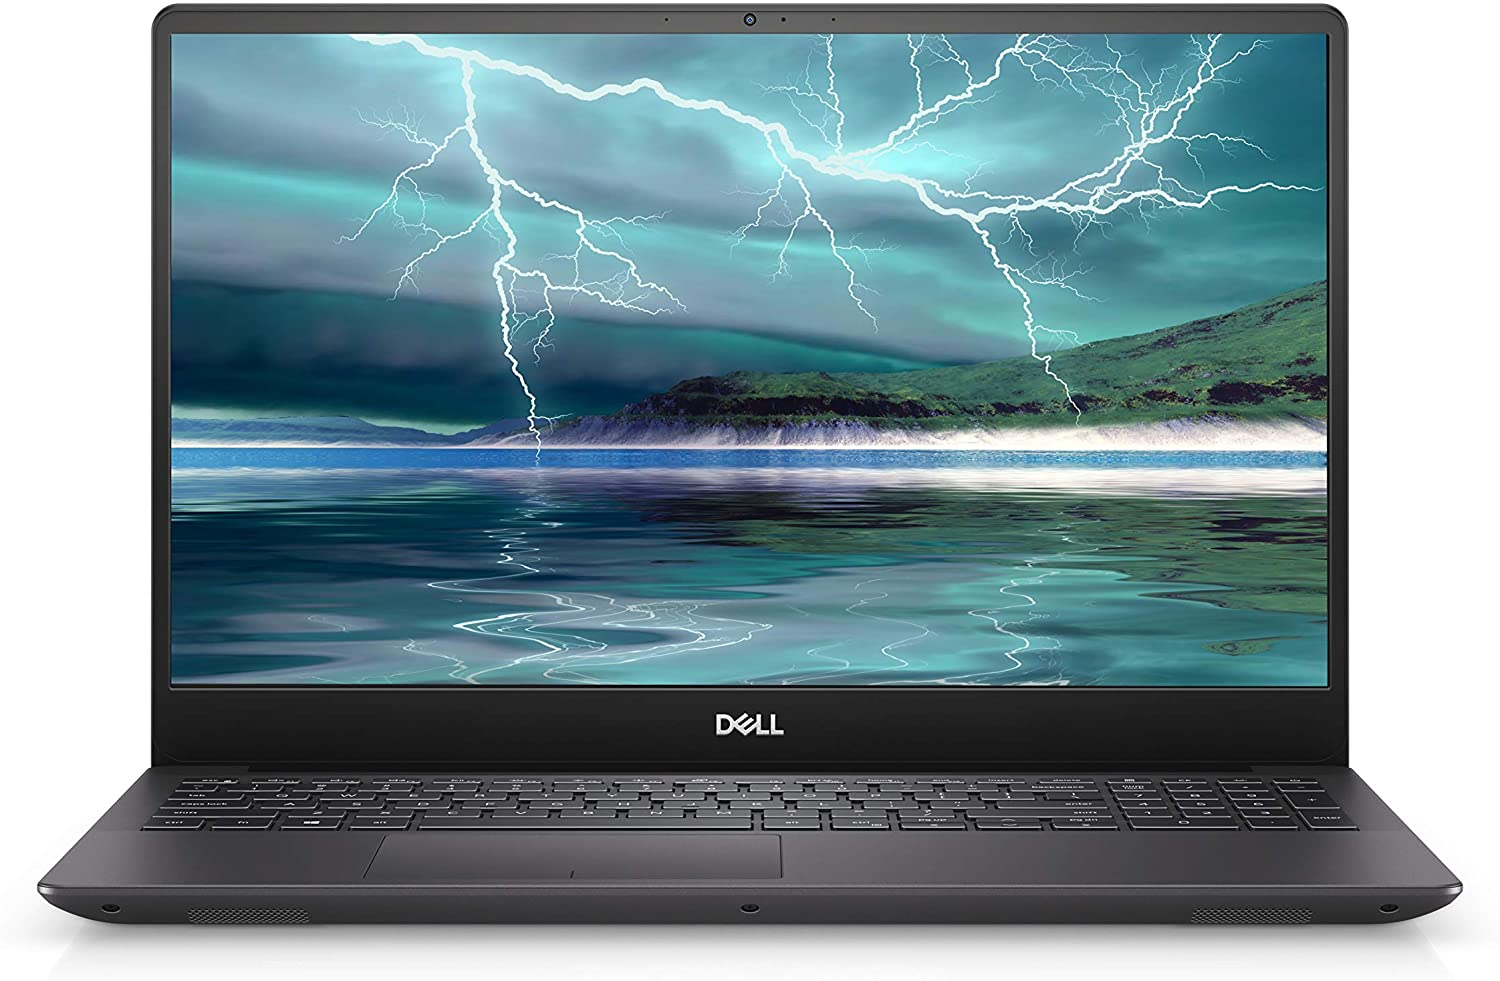 Dell Inspiron 15 7000 15.6 Inch FHD Display Laptop